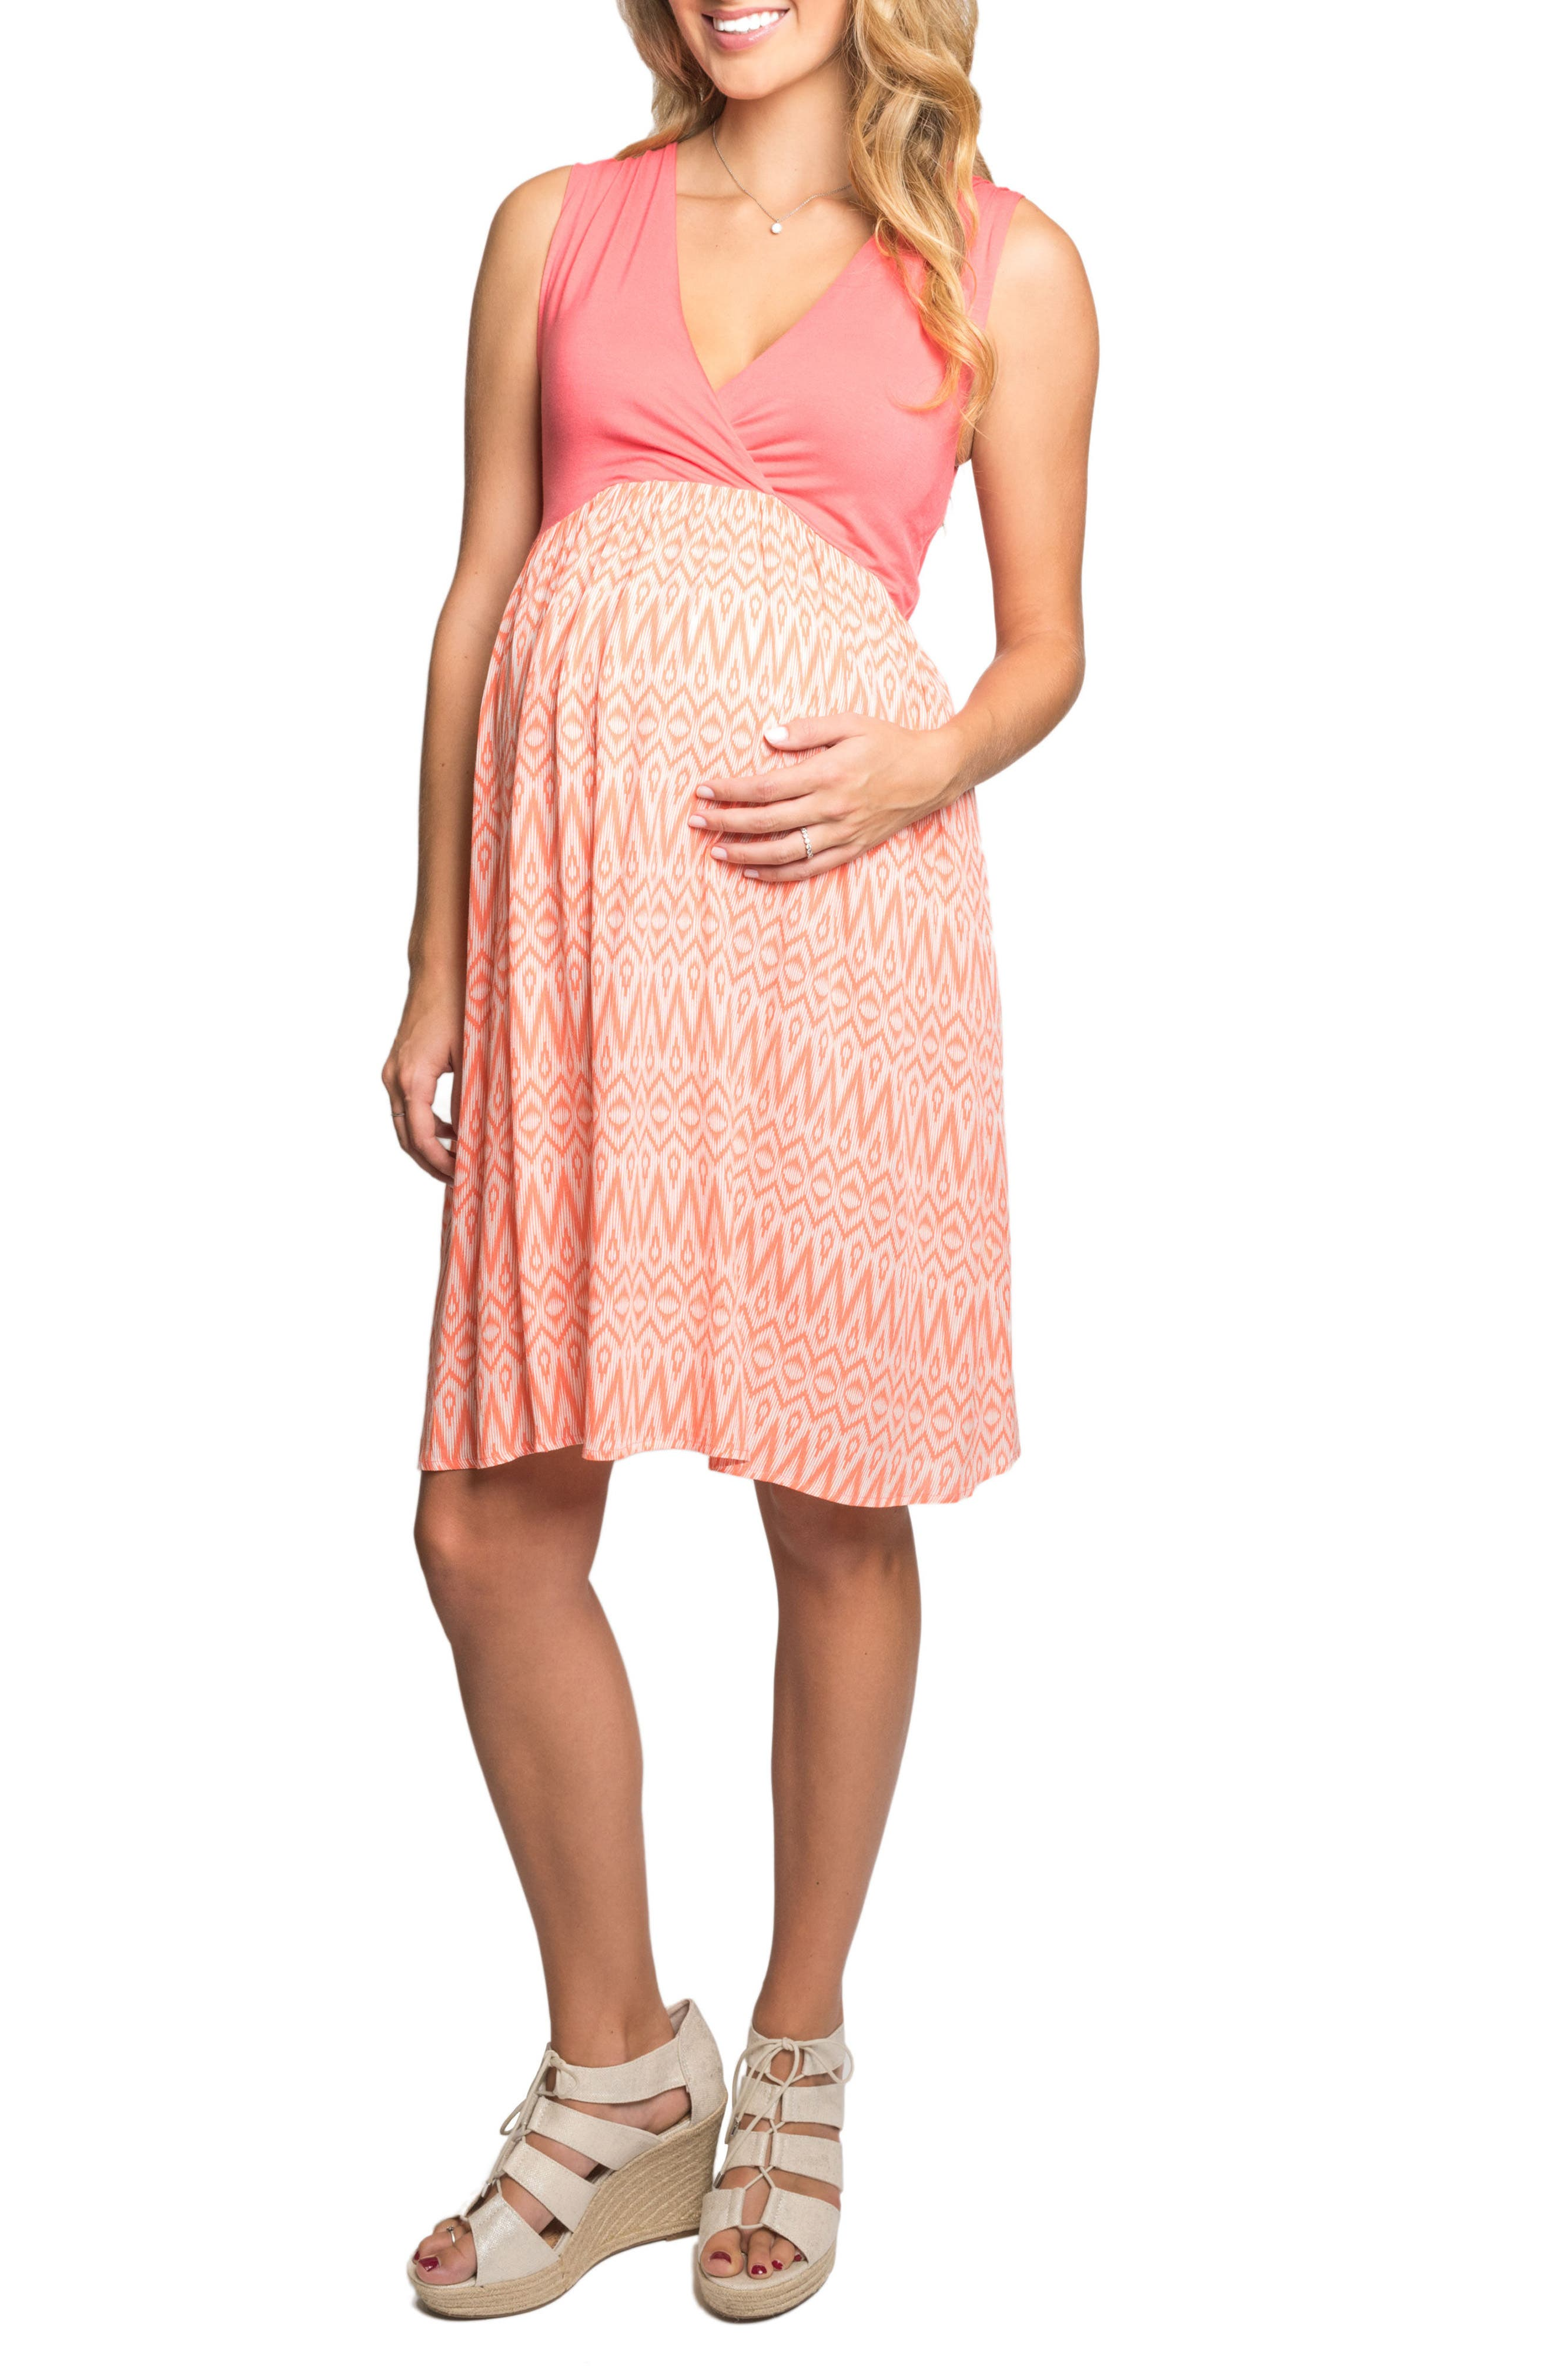 Everly Grey Cleo Maternity/Nursing Dress